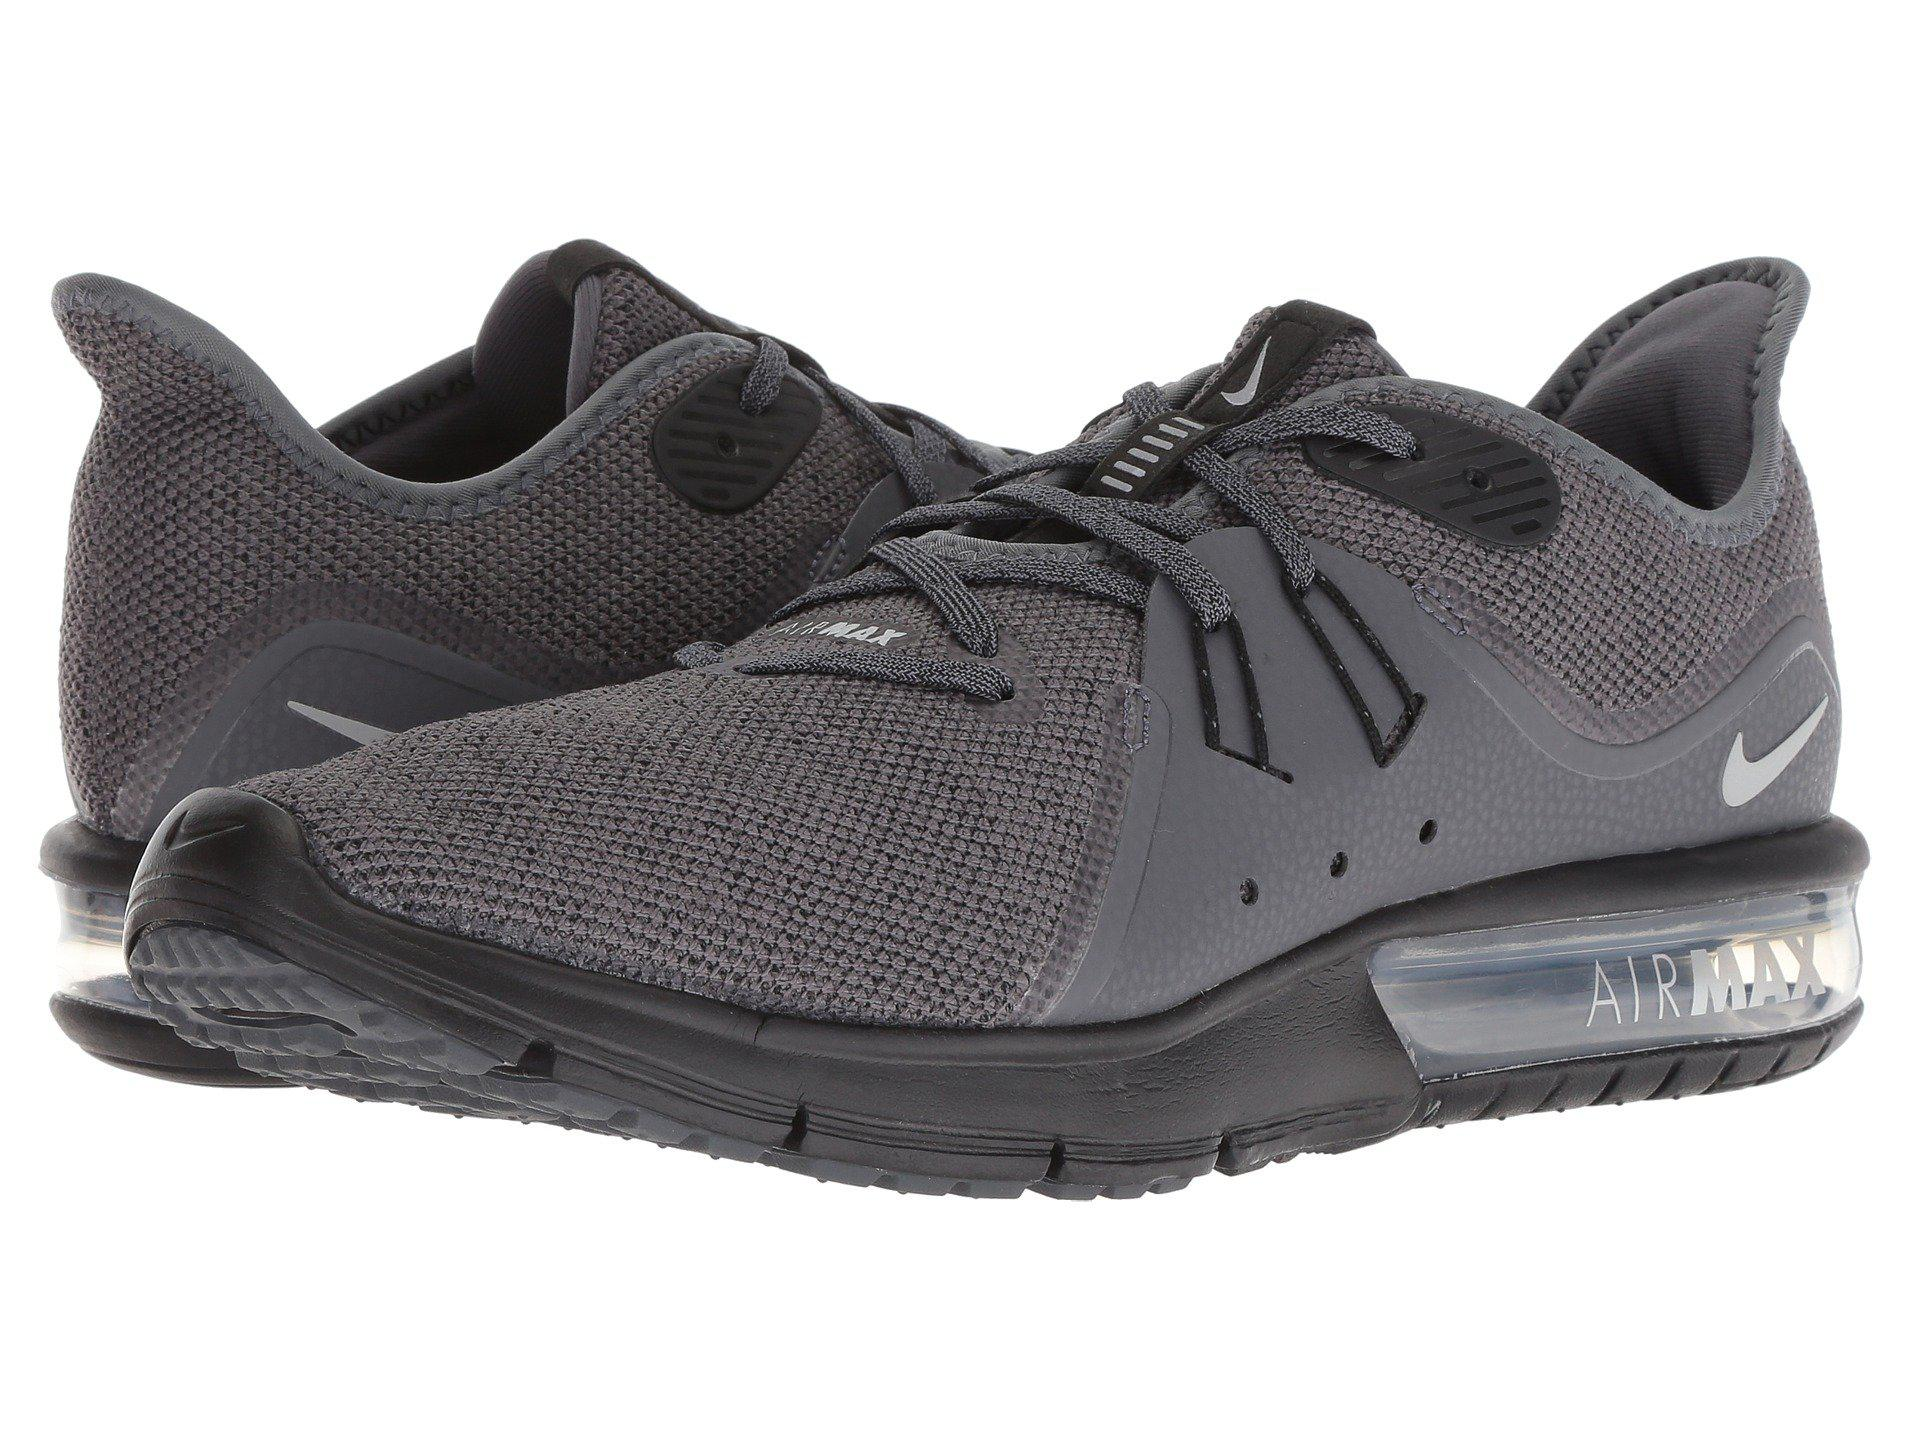 437d37e9ec Lyst - Nike Air Max Sequent 3 in Gray for Men - Save 45%